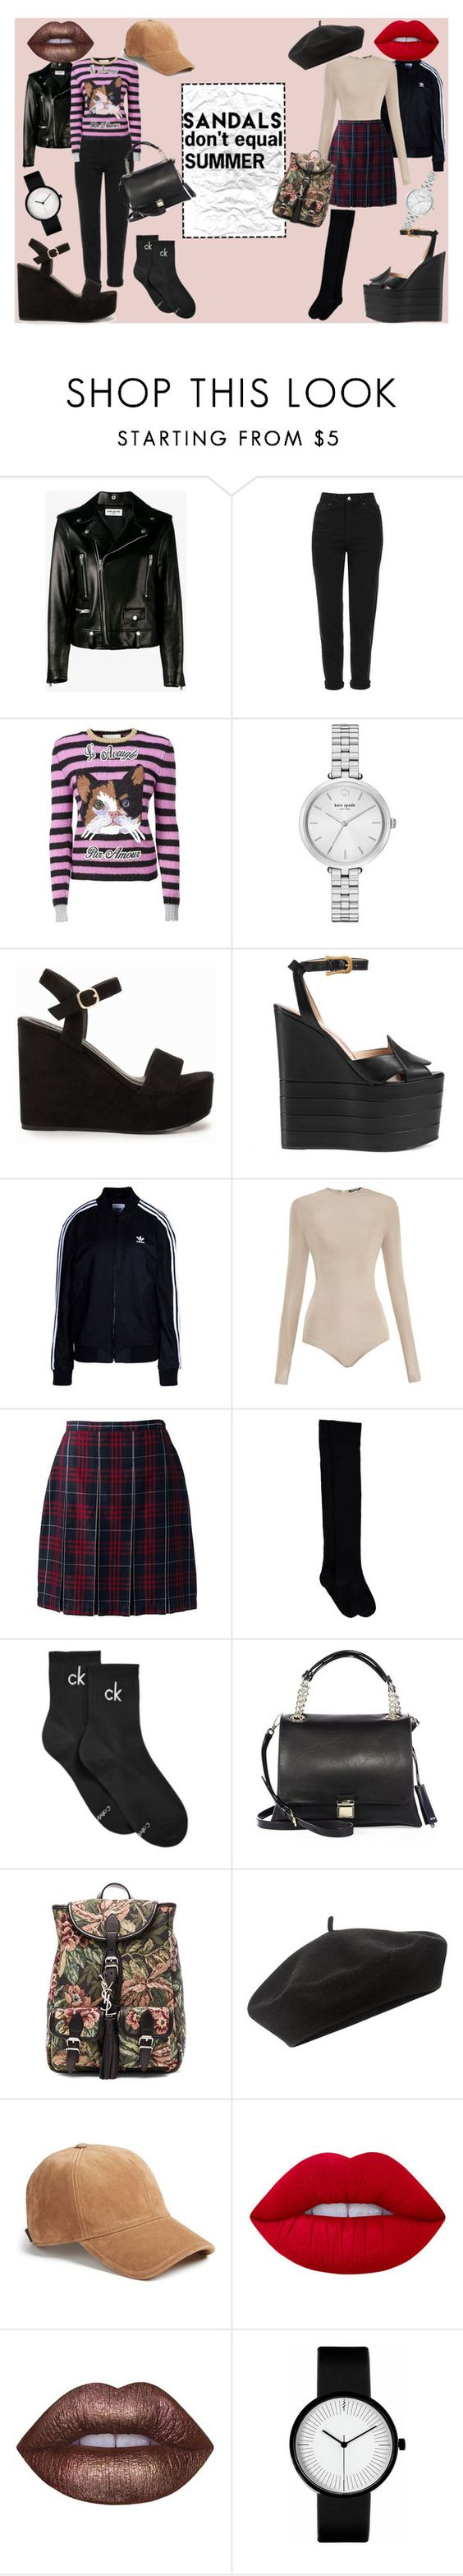 """""""sandals don't equal summer"""" by wizardswithnomoney ❤ liked on Polyvore featuring Yves Saint Laurent, Topshop, Gucci, Kate Spade, Nly Shoes, adidas Originals, Balmain, Lands' End, Calvin Klein and Miu Miu"""